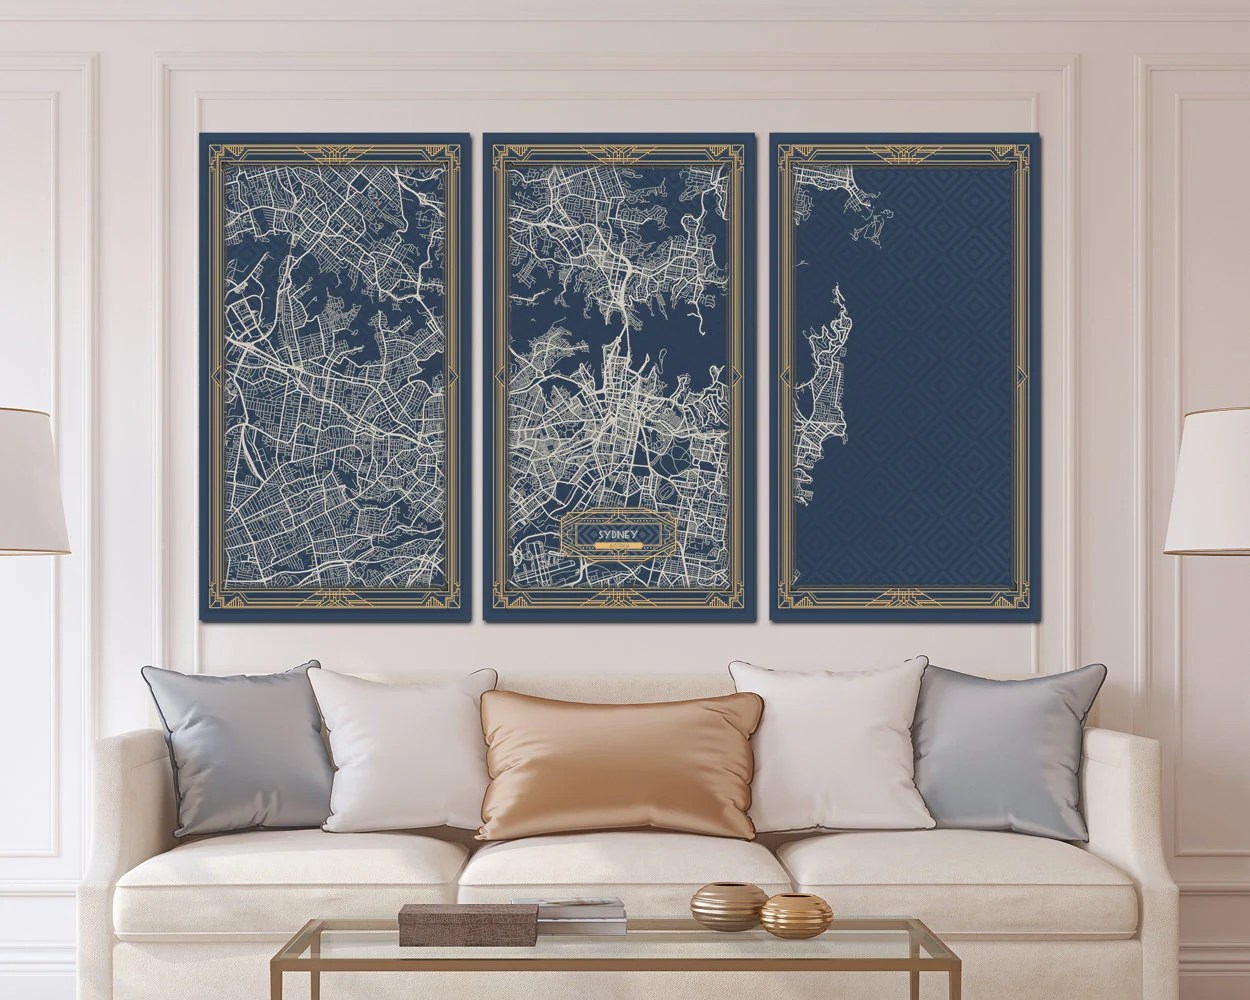 Wall Prints For Living Room Australia Sydney Australia Map Art Deco Canvas Print Map Wall Art Canvas Print Ready To Hang For Home Decor Art Deco Map Style